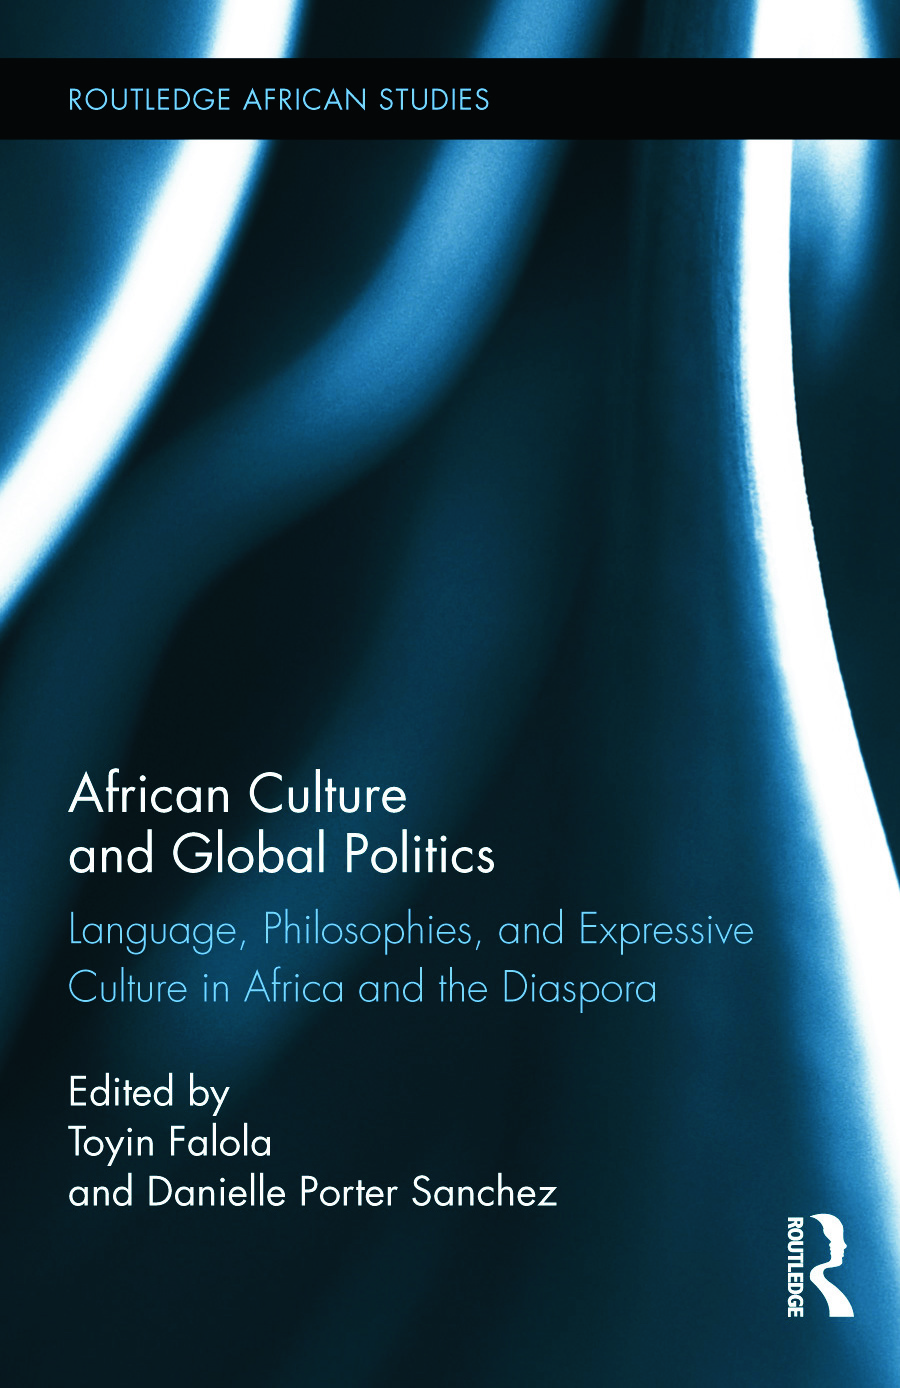 African Culture and Global Politics: Language, Philosophies, and Expressive Culture in Africa and the Diaspora book cover